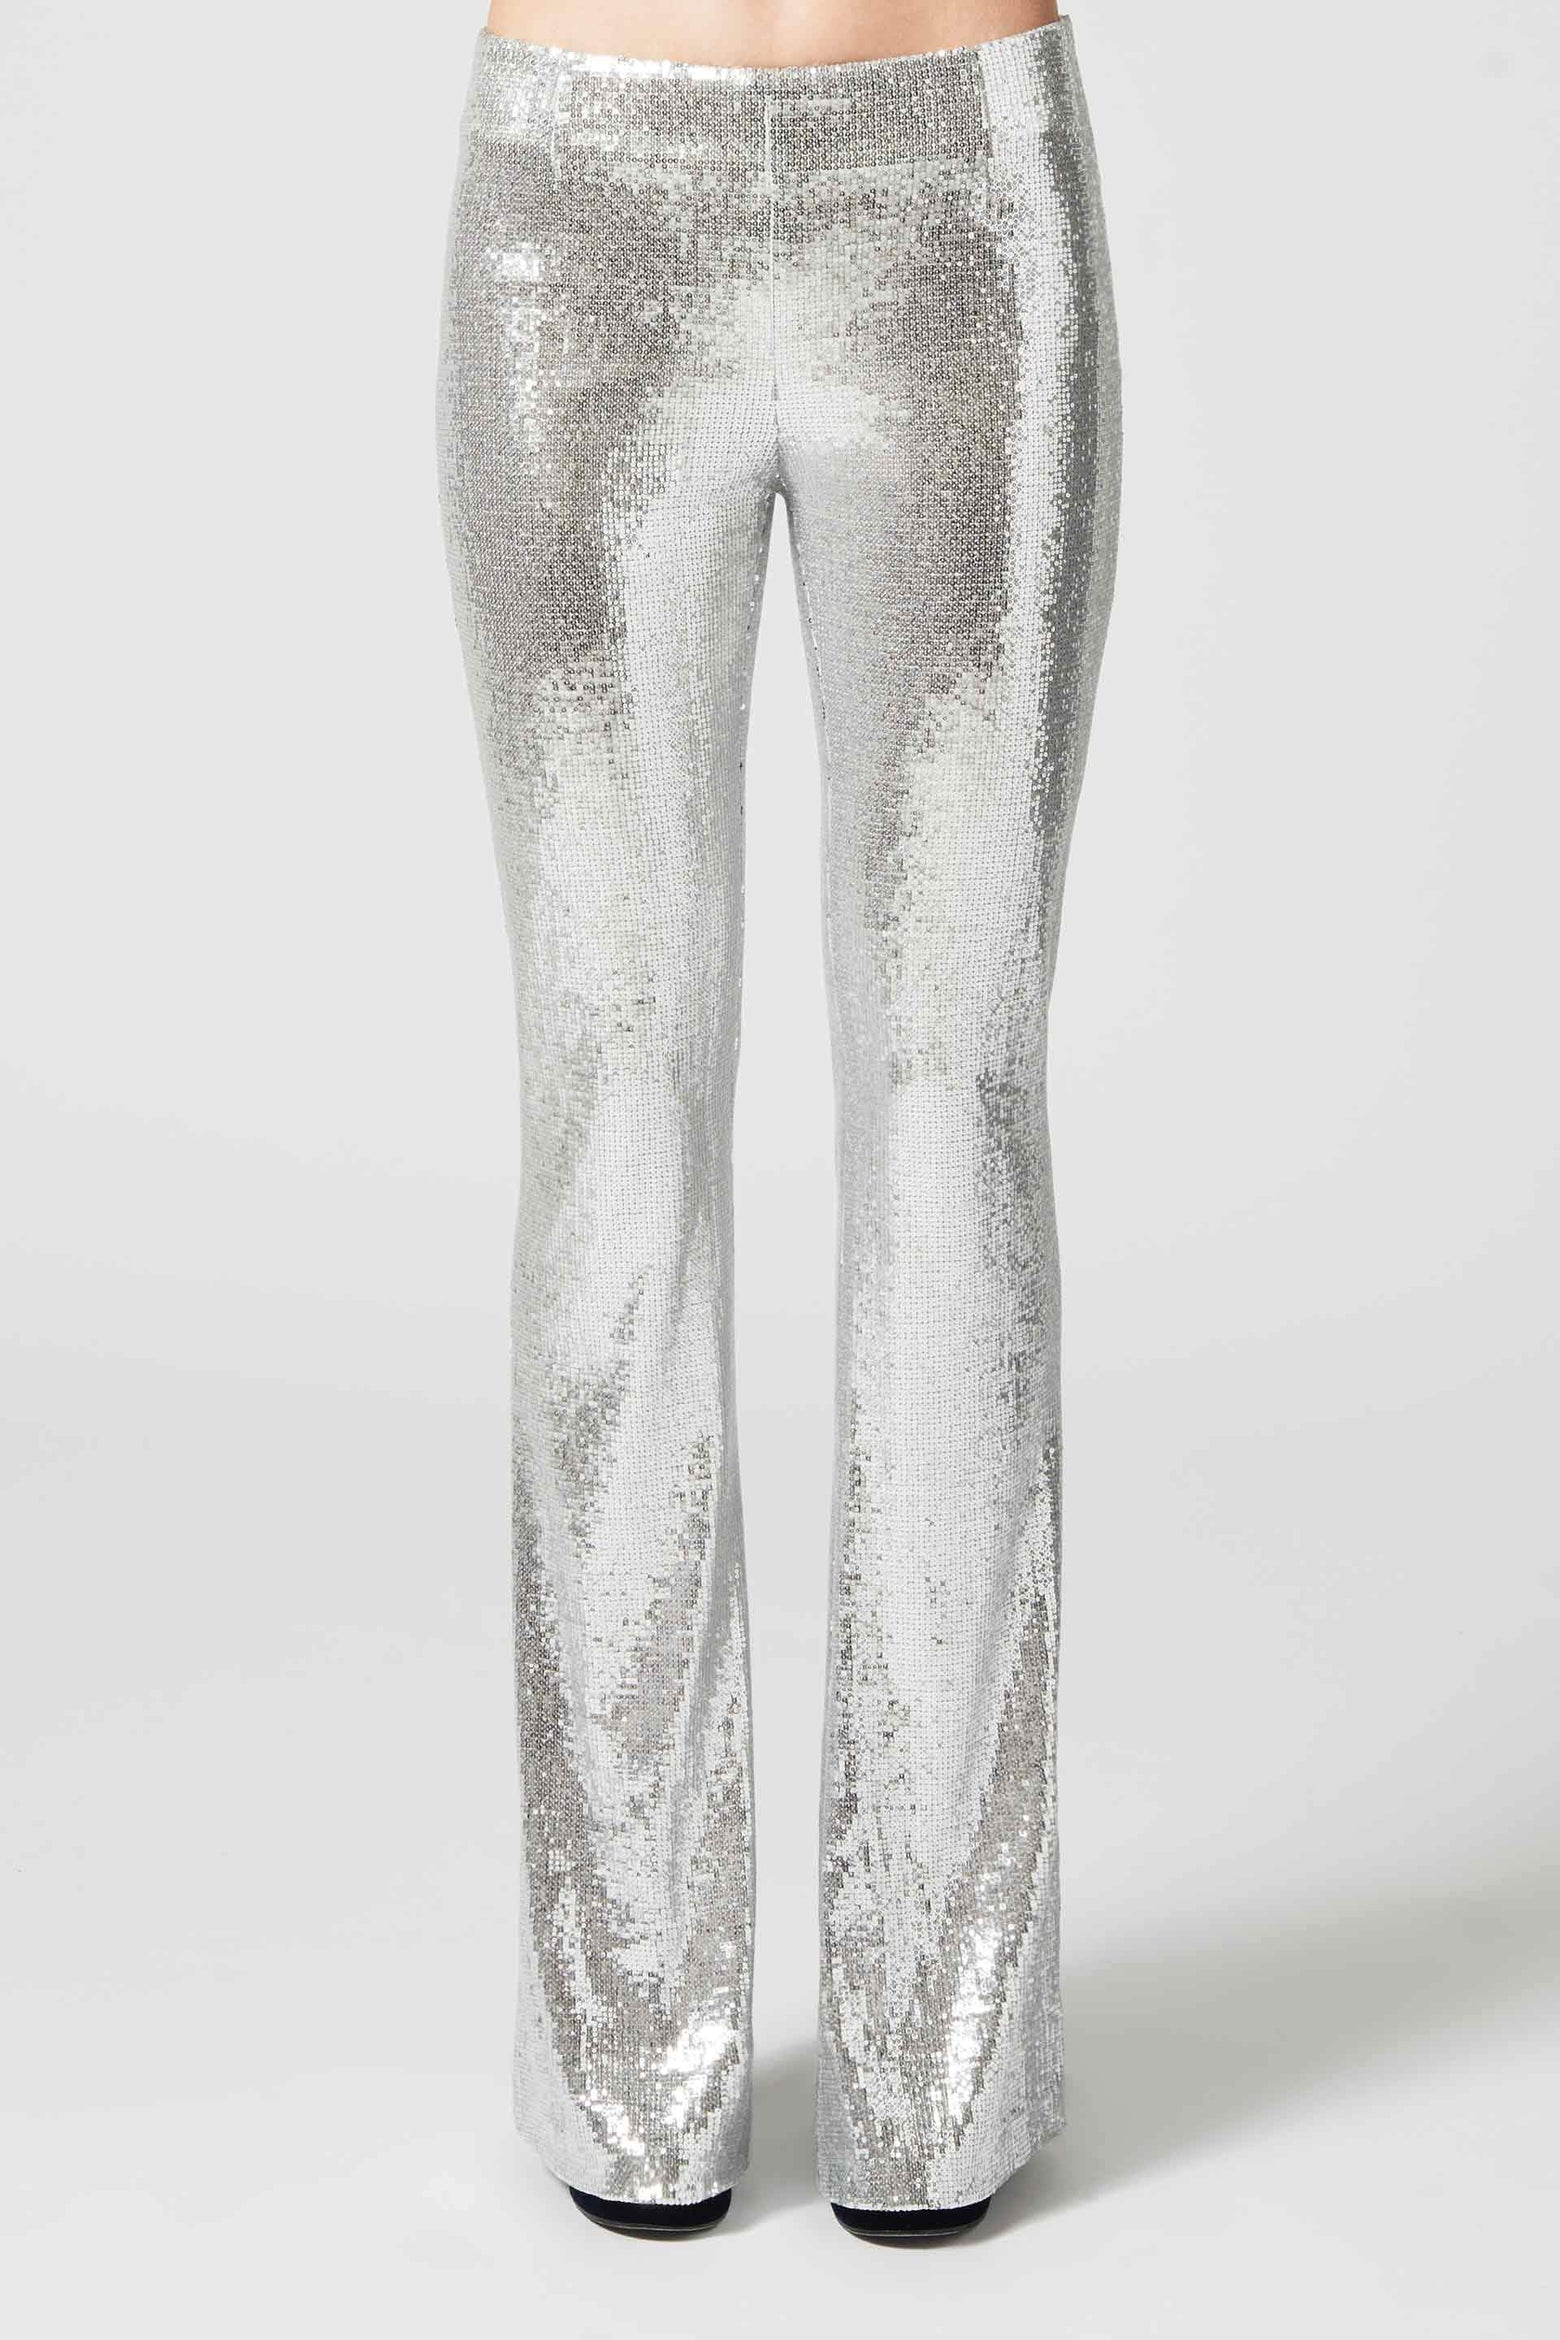 Galaxy Flared Sequin Trousers - Silver